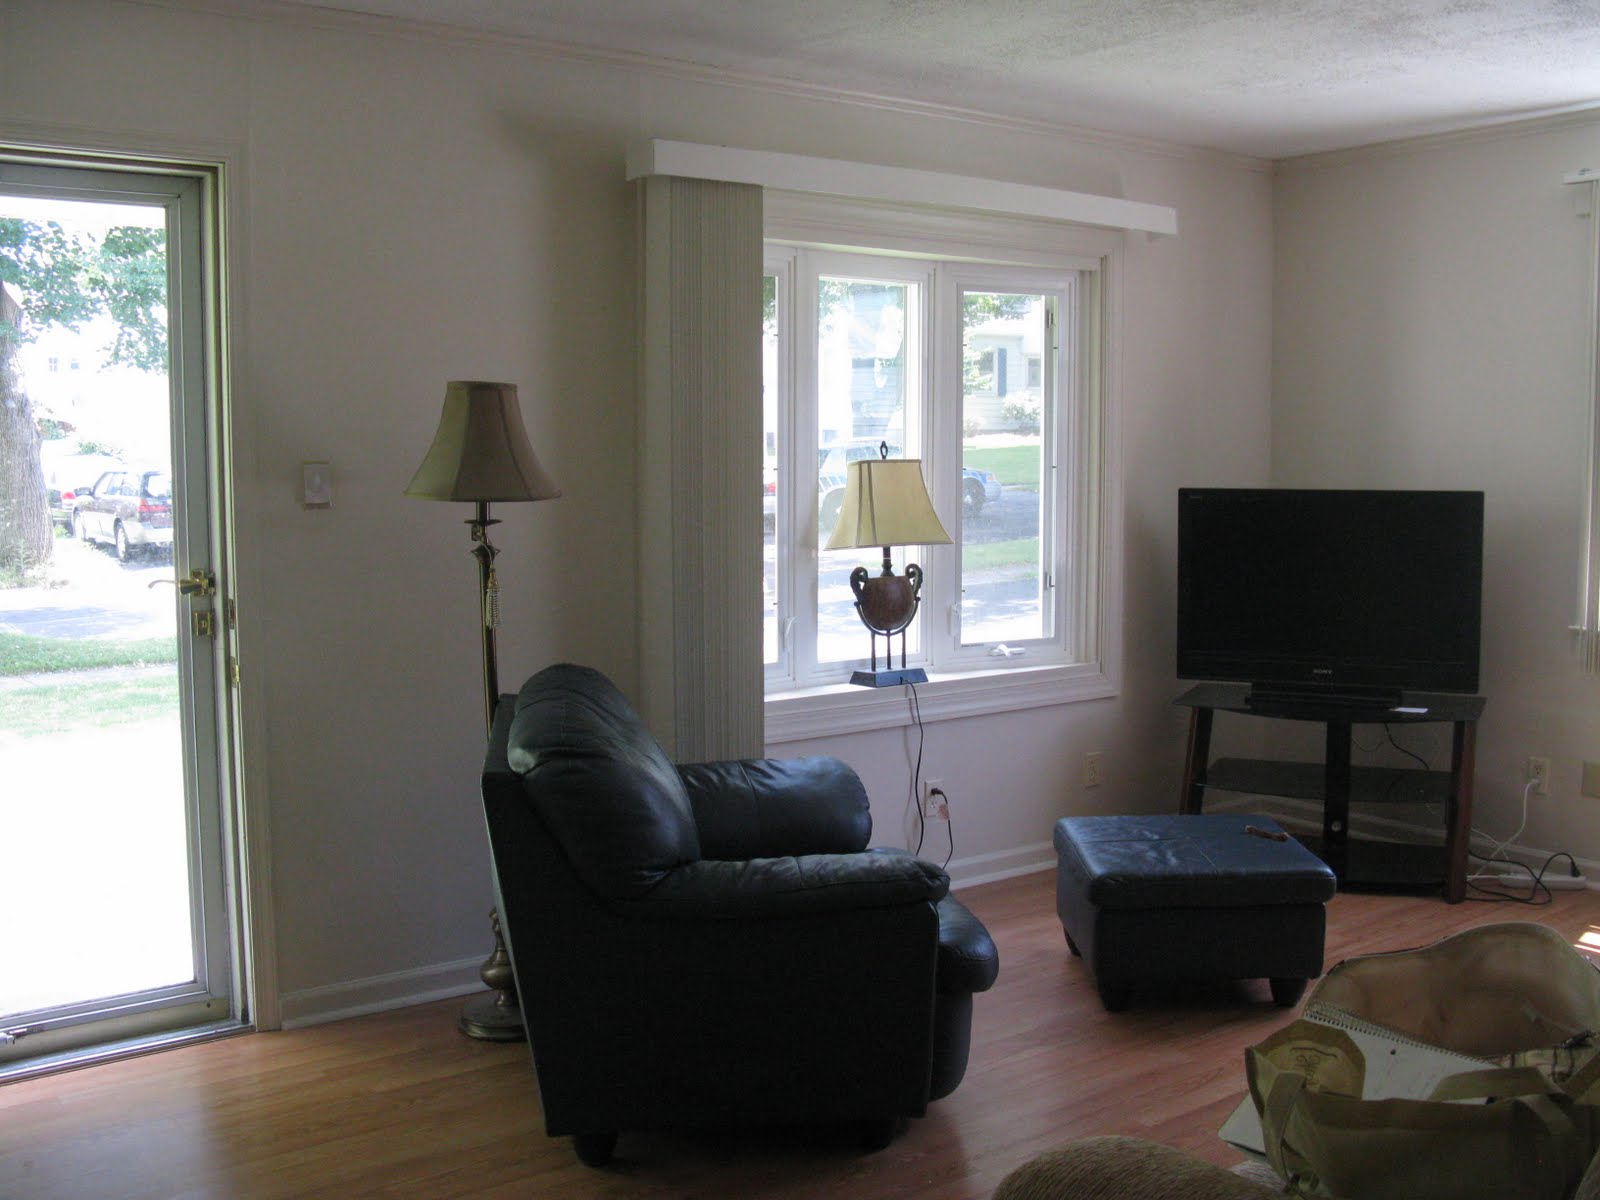 Tiny Home Designs: LoveYourRoom: Small Awkward Living Room Becomes Beautiful